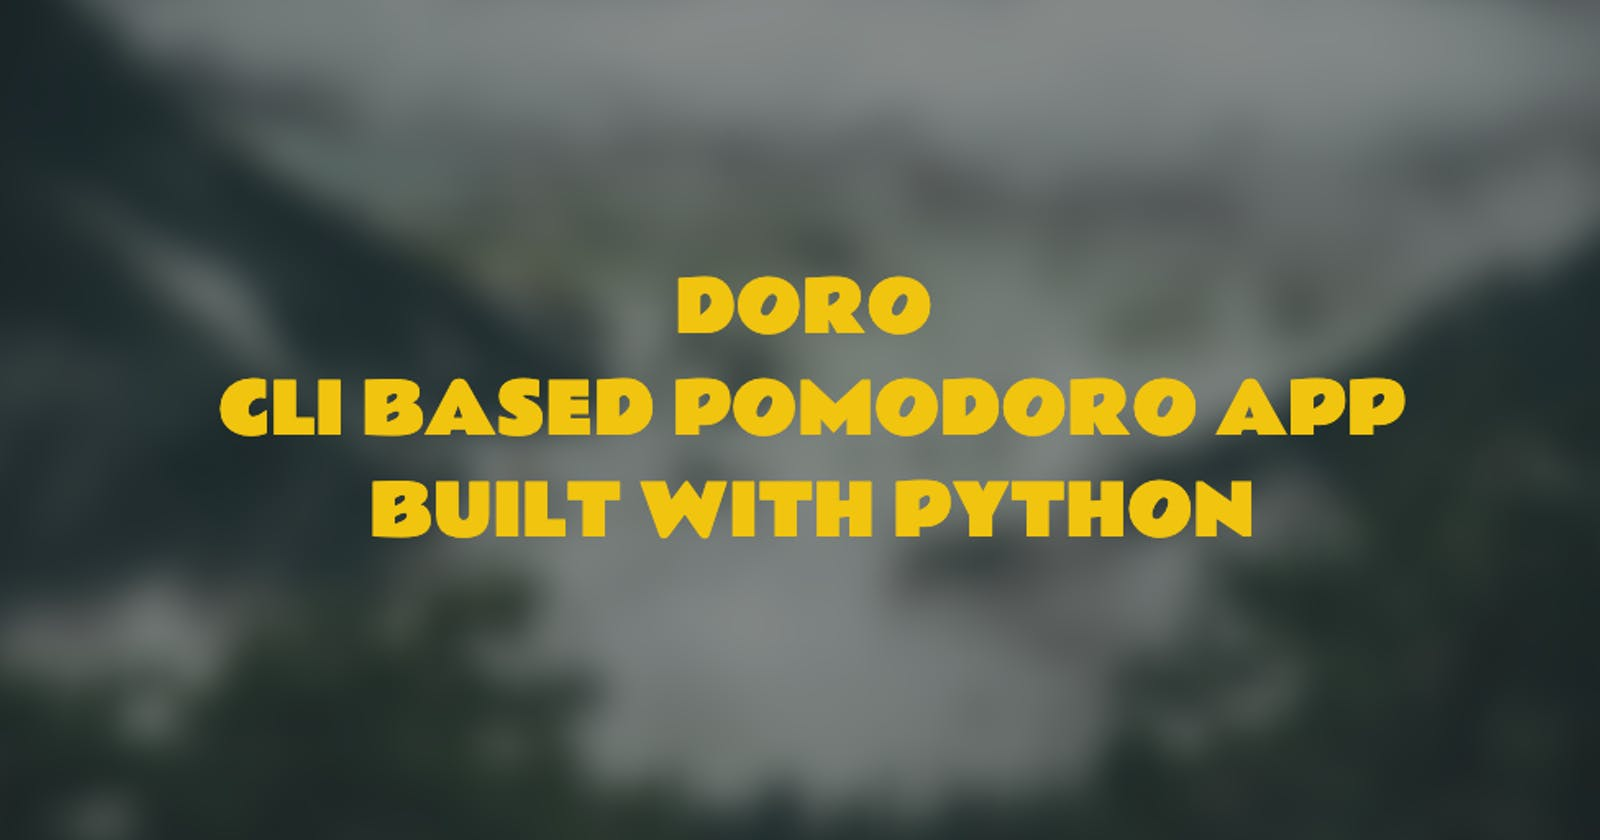 How I built an open source CLI based Pomodoro app?